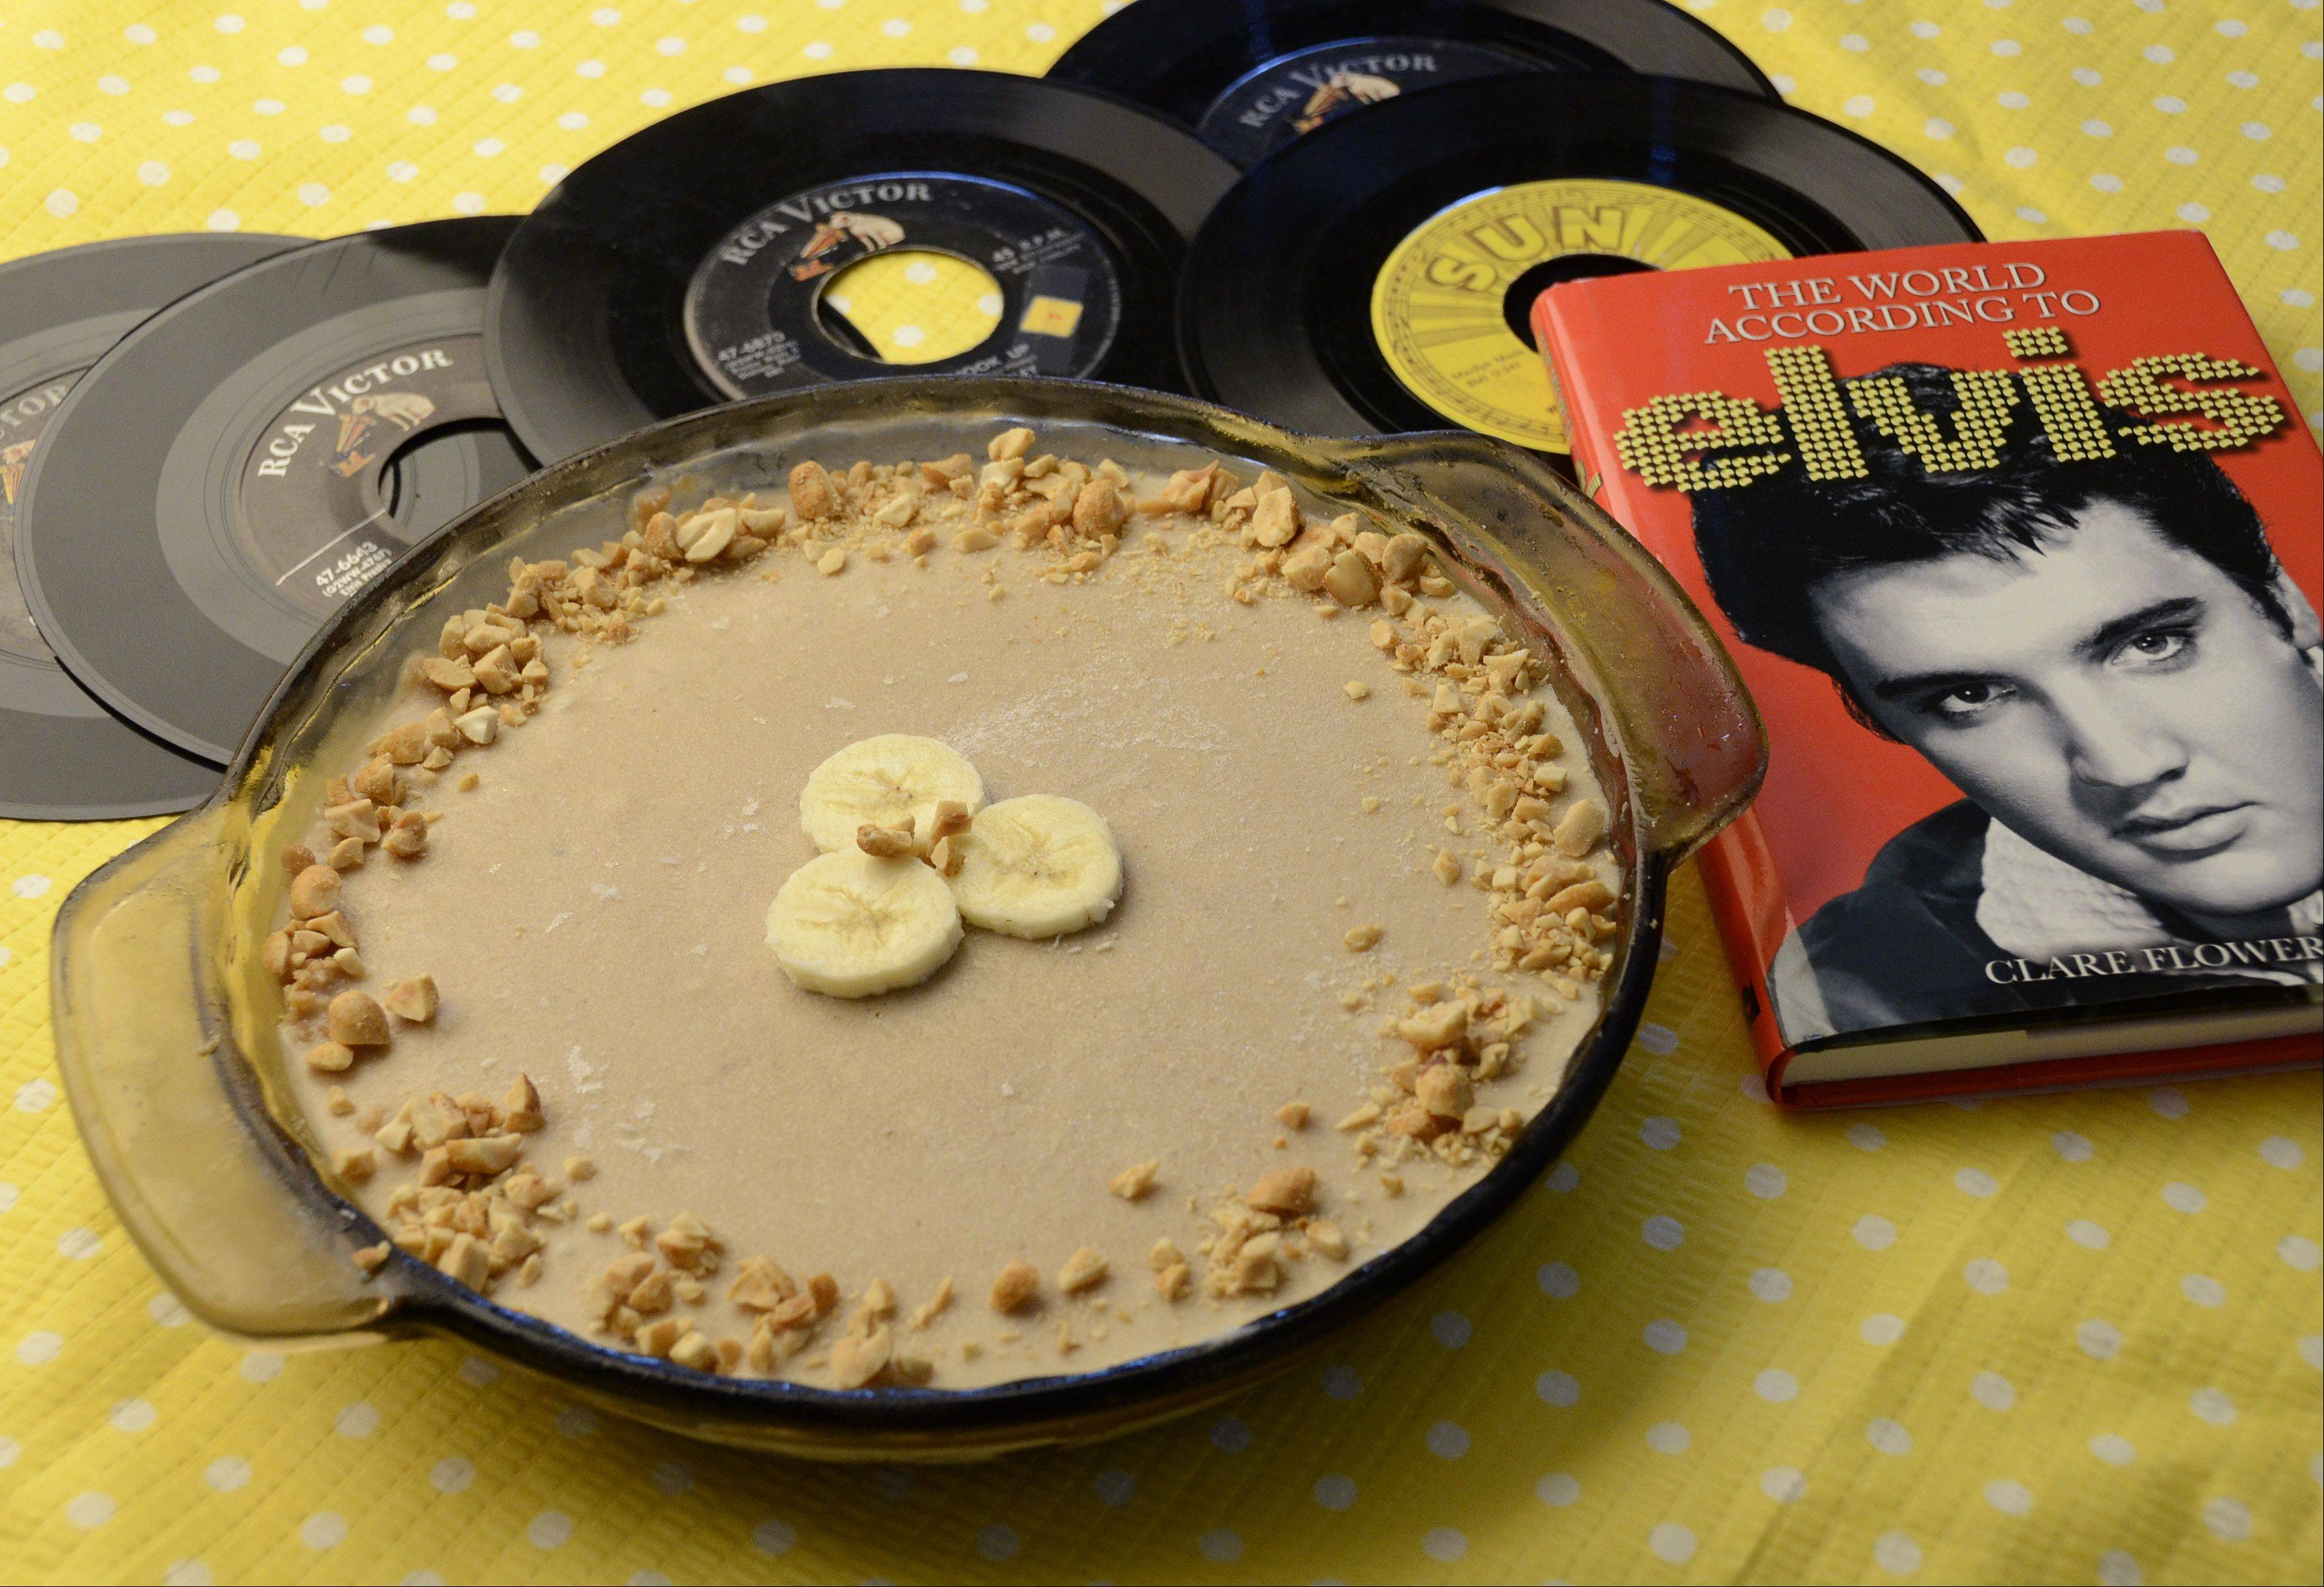 Ice cream pie with peanut butter and bananas pays tribute to Elvis Presley, who died 35 years ago next month.